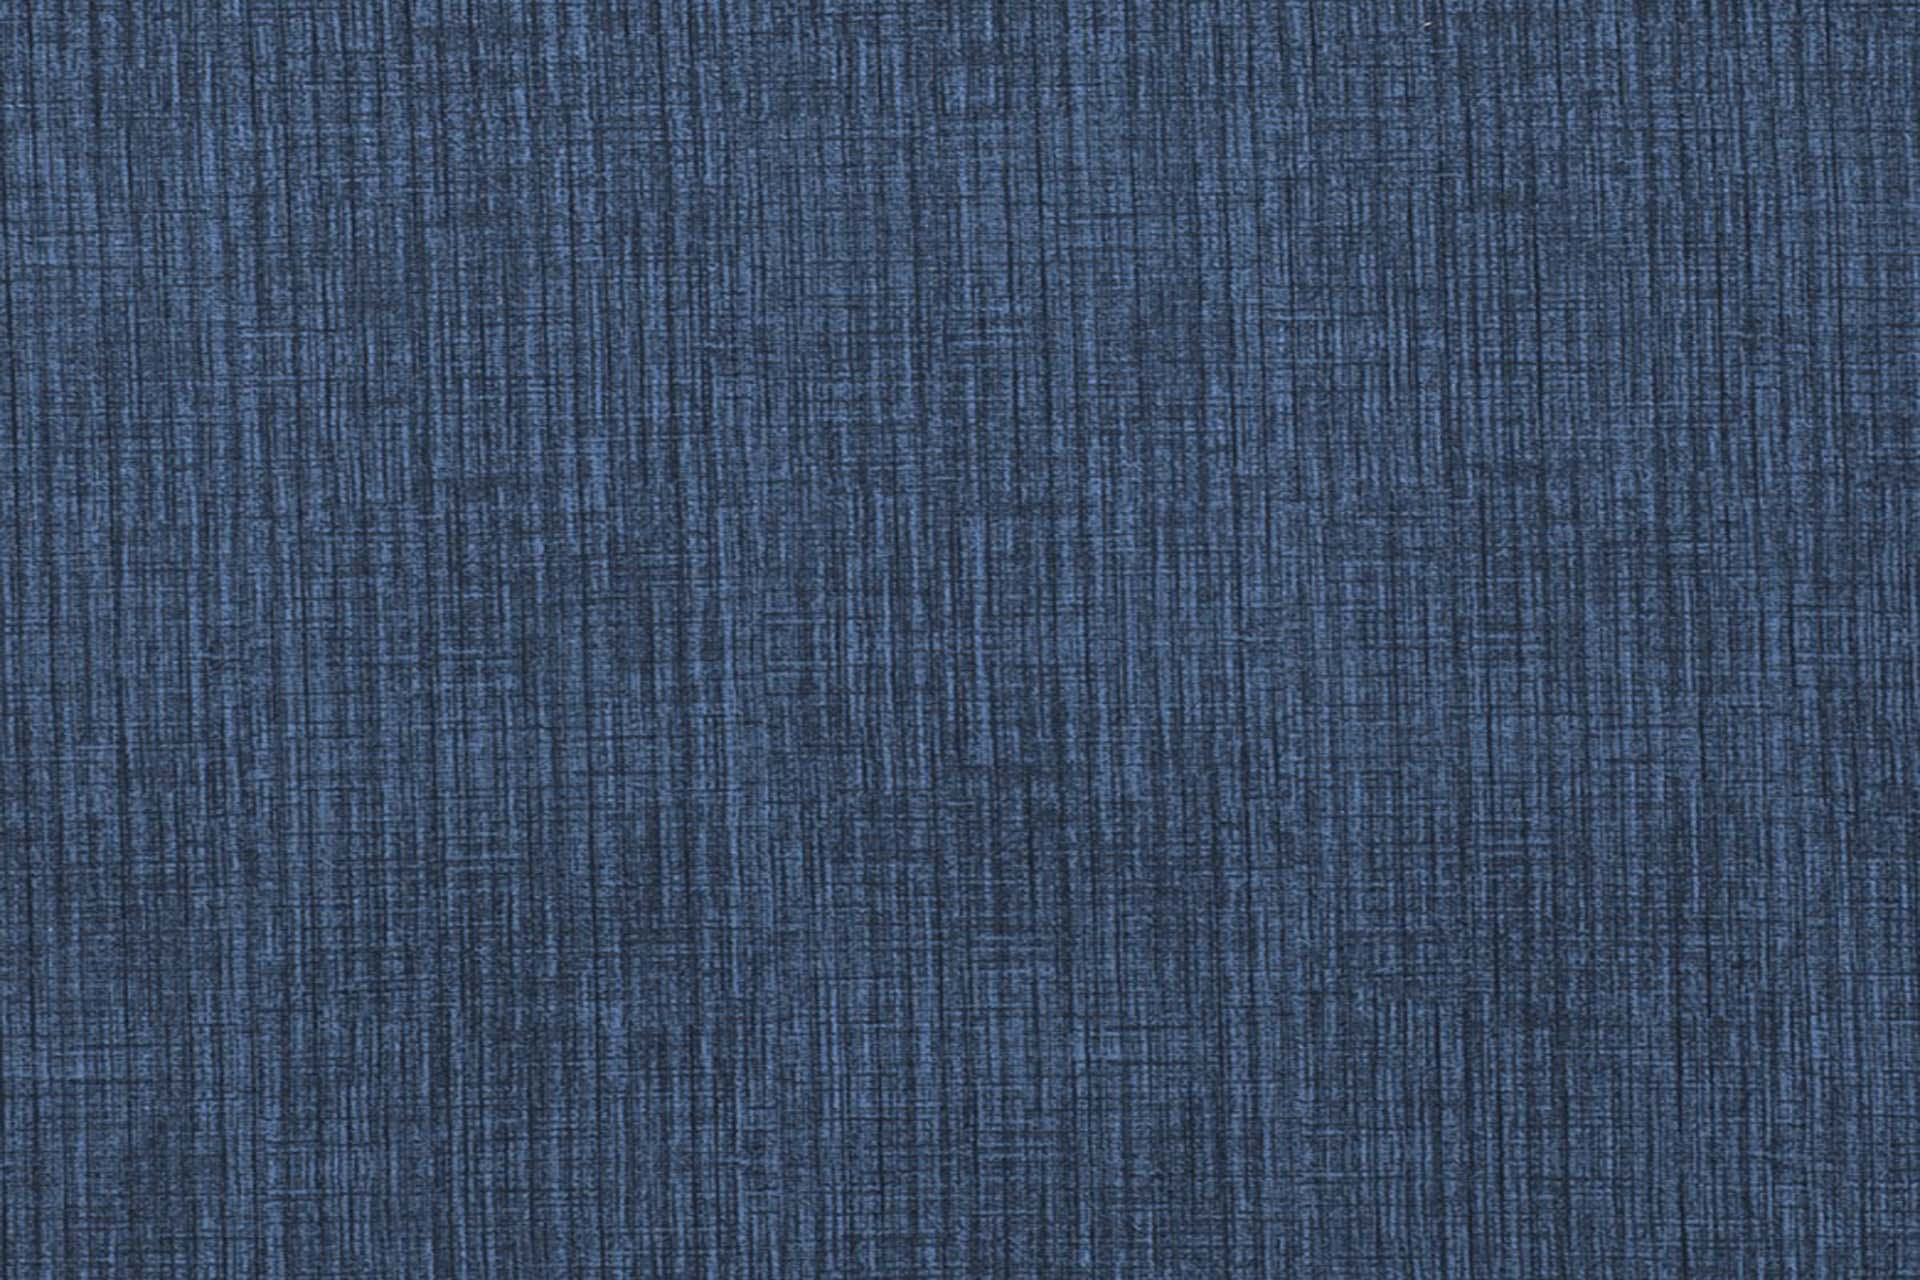 Magasin Tissu Nantes Tissus Ameublement Nantes Stunning Tissus D Ameublement